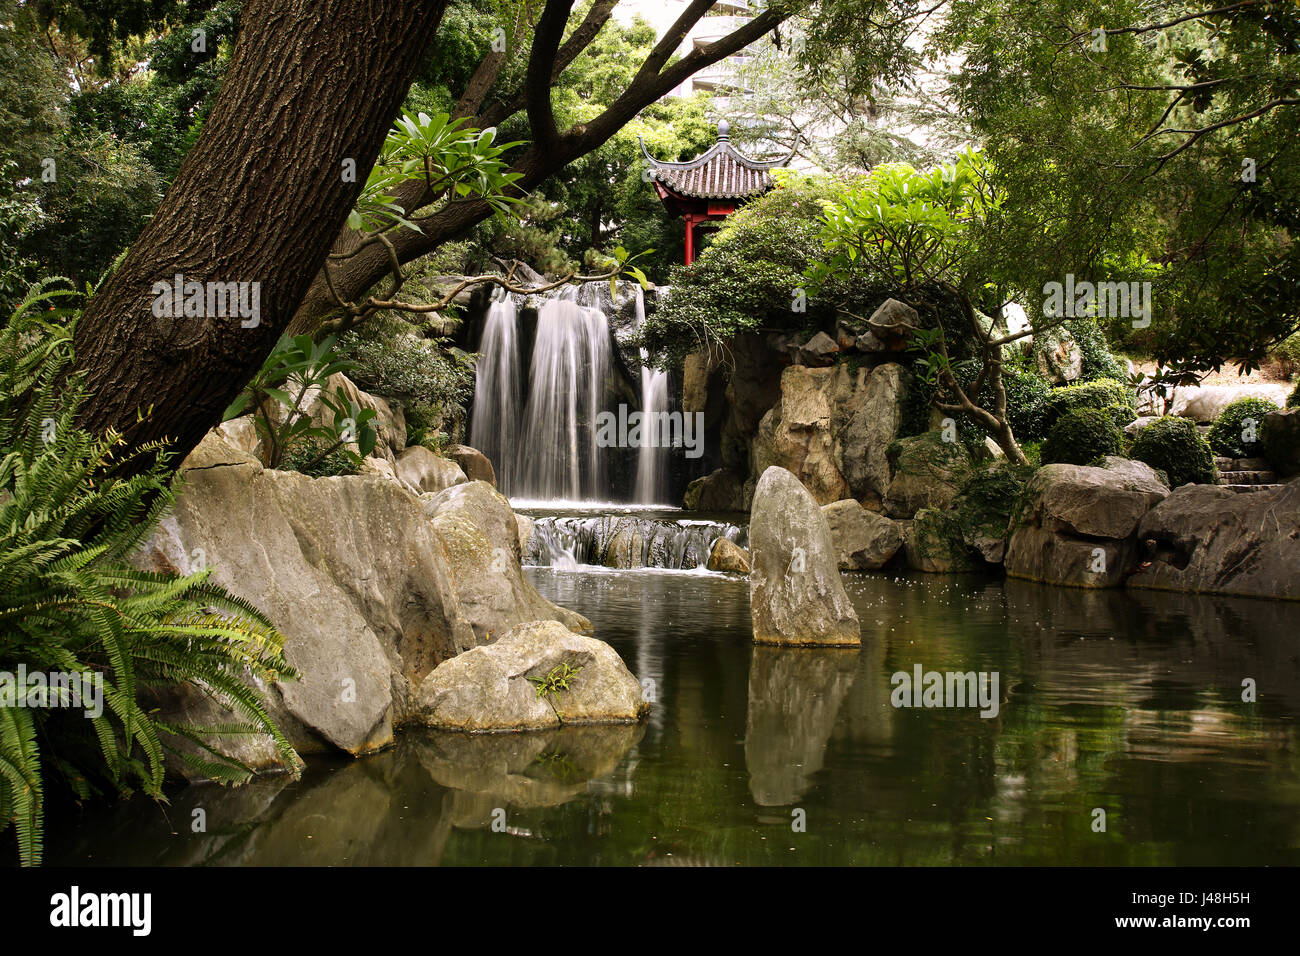 Waterfall and lake at the 'Chinese Garden of Friendship', at Darling Harbour precinct, Sydney, Australia - Stock Image